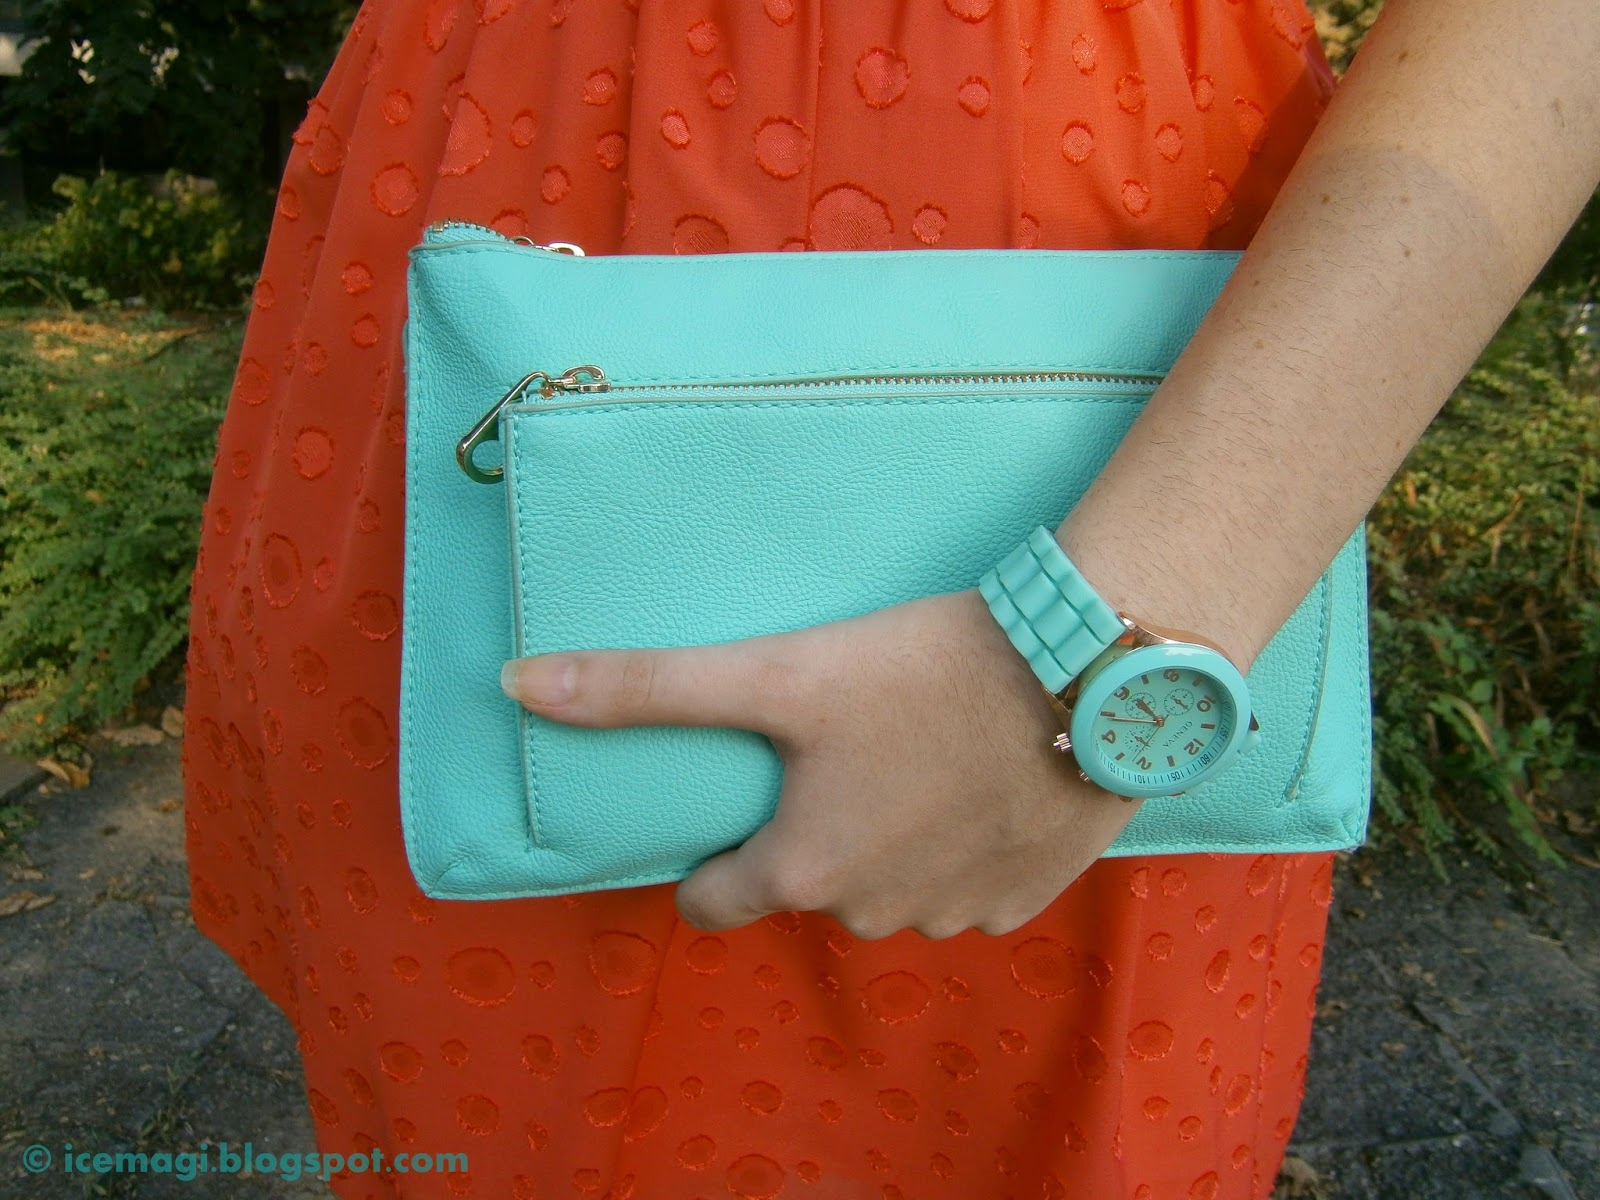 Mint watch & bag